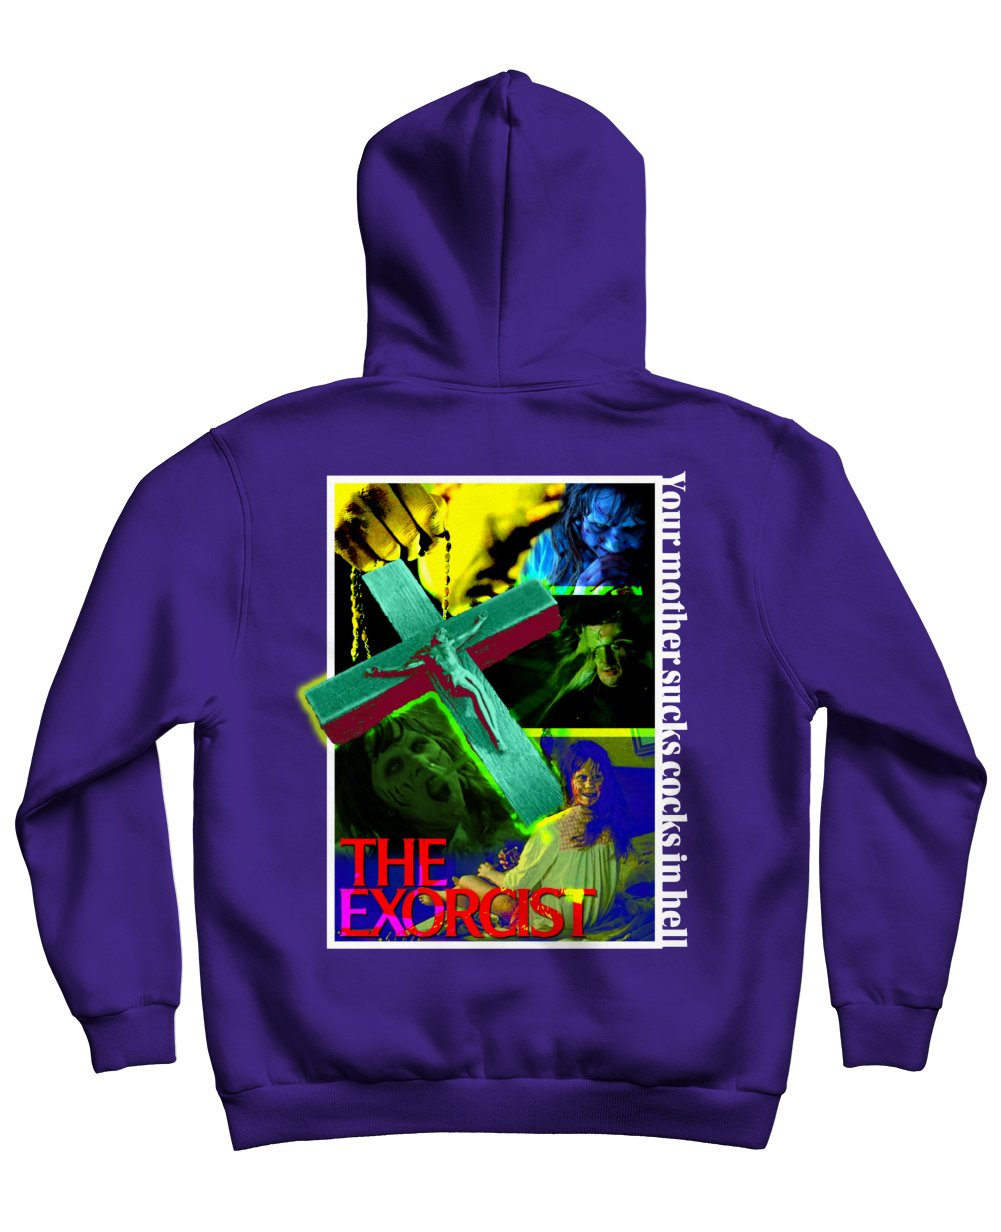 The Exorcist Print Hoodies in Purple